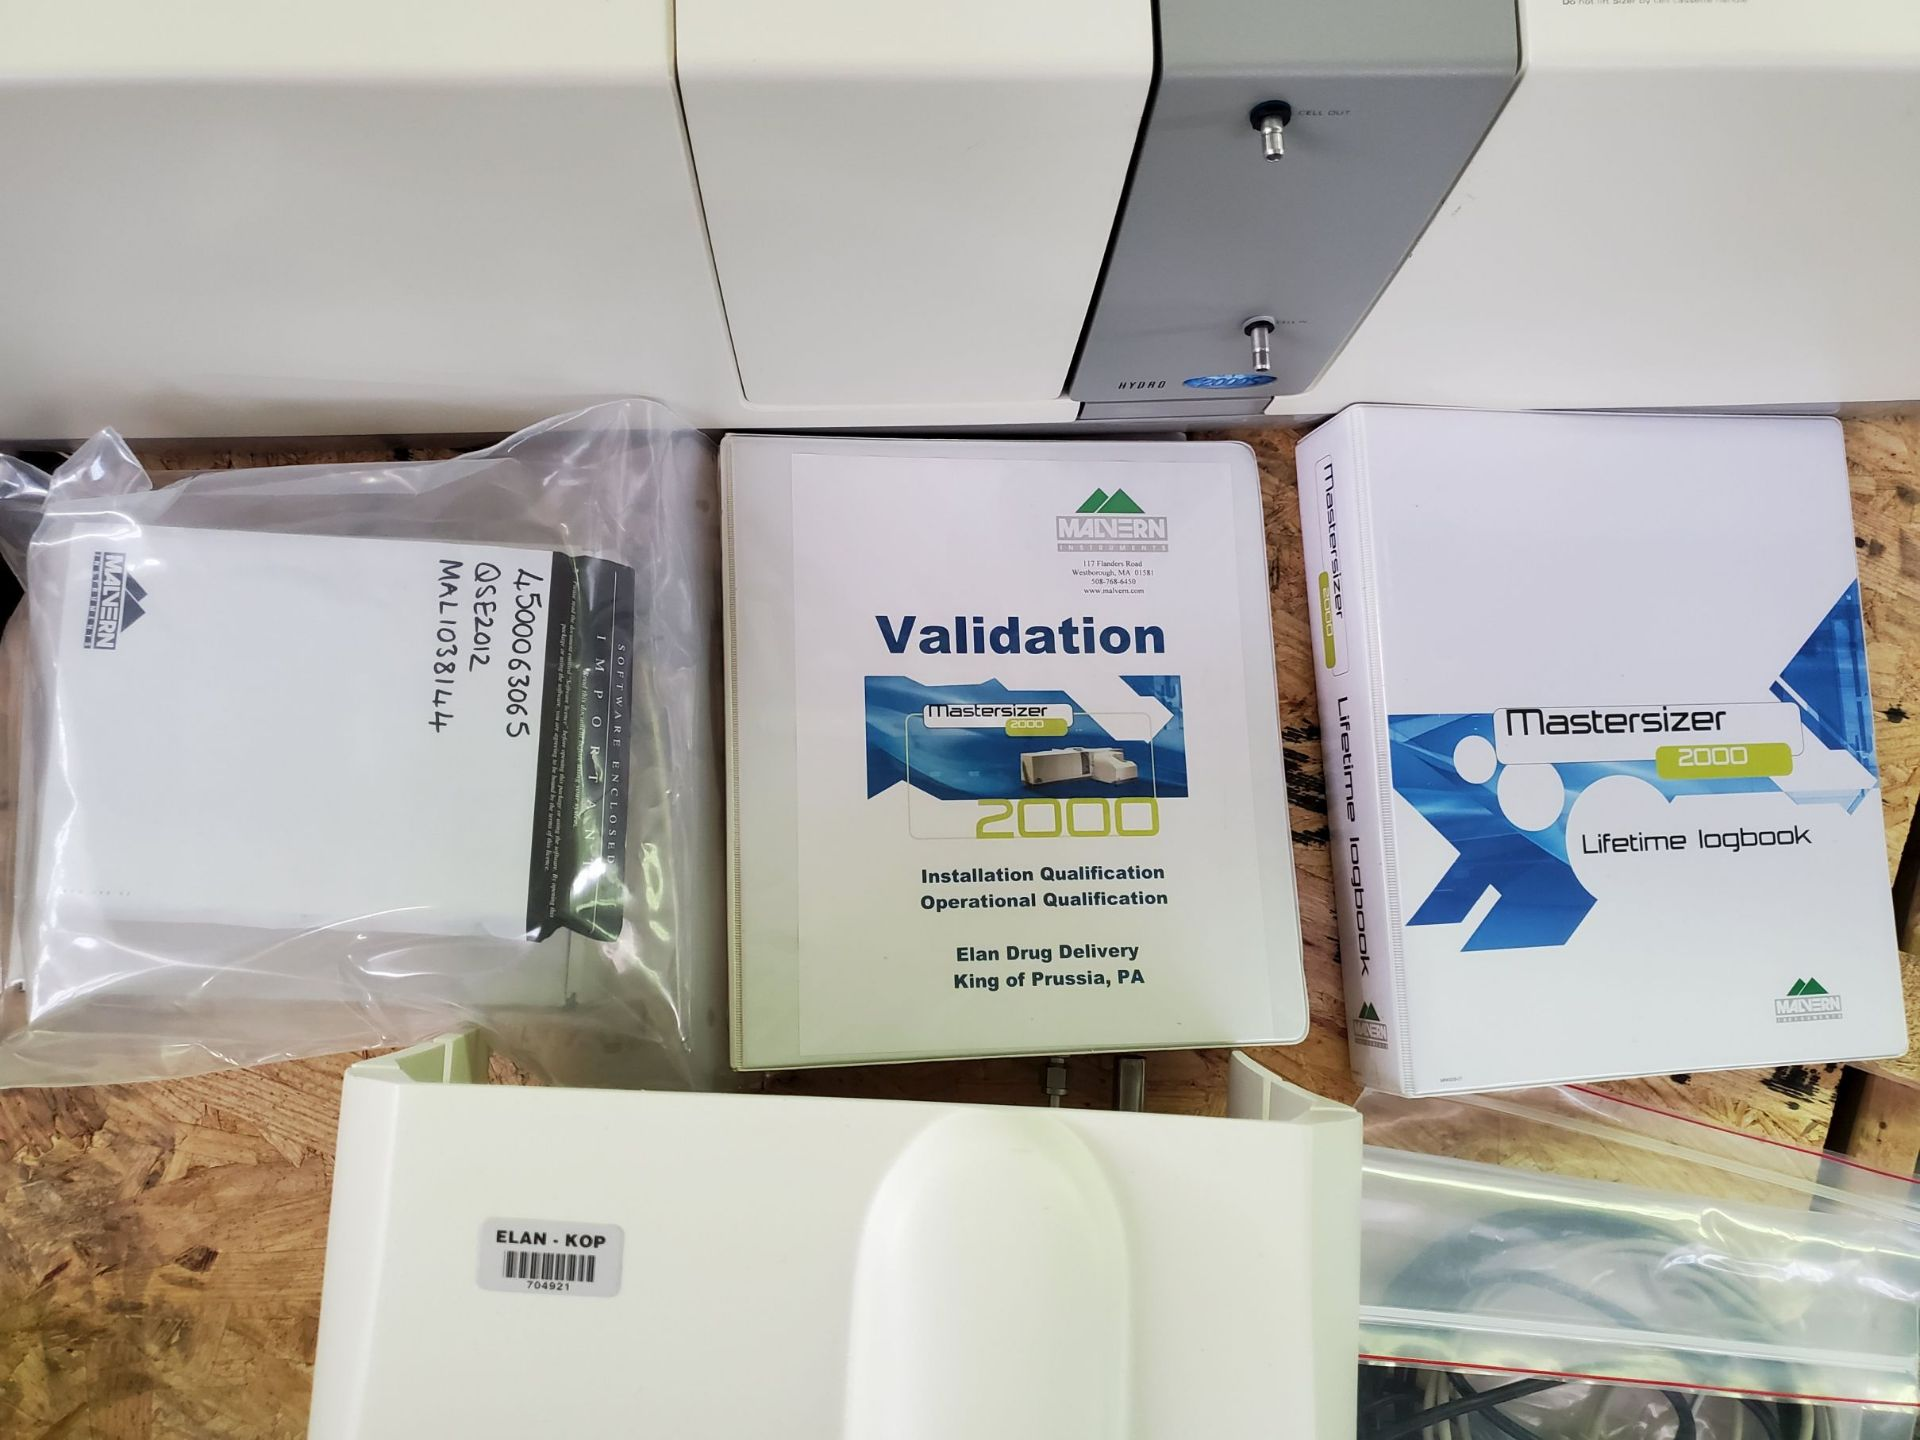 Lot 14 - Malvern Mastersizer 2000 Particle Size Analyzer, with manuals, documents and software